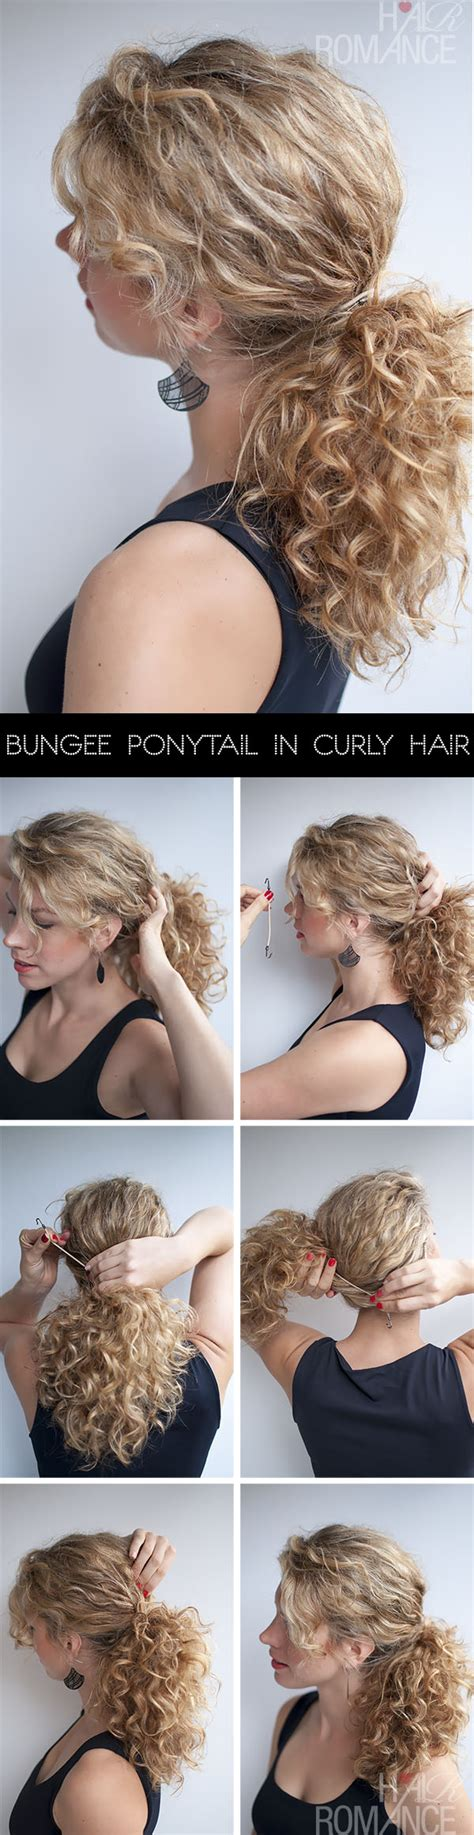 Curly Hairstyles For Tutorial by Curly Hairstyle Tutorial The Curly Ponytail Hair